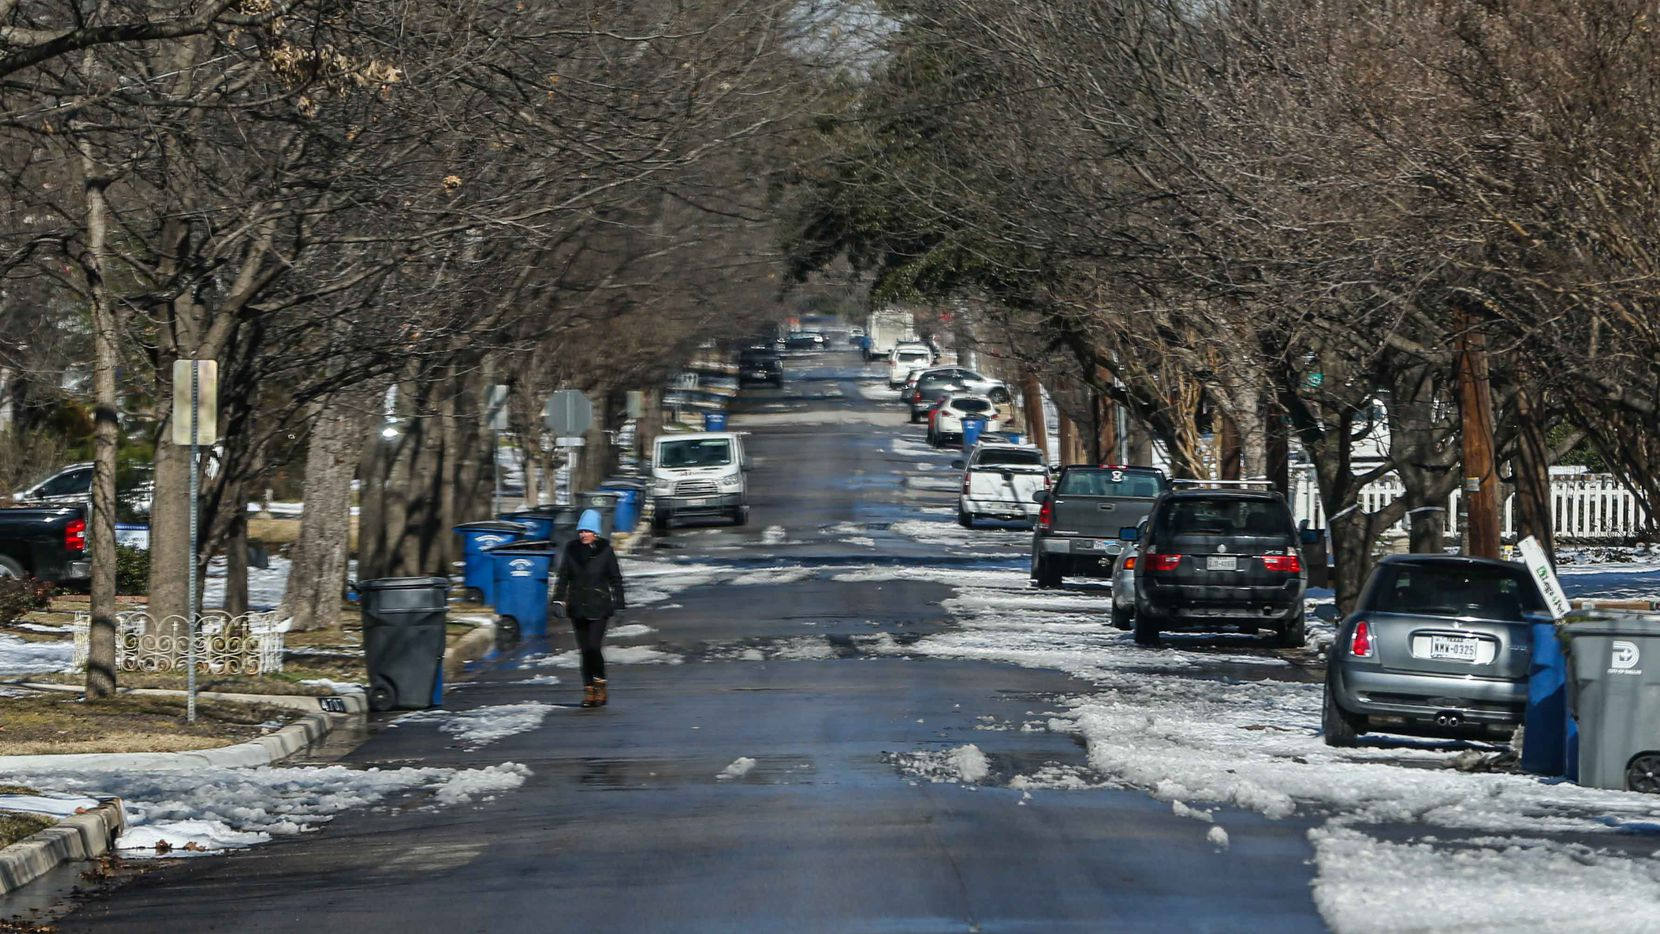 North Texas has begun to thaw out from the week's freezing weather, but trouble such as lingering power outages and boil-water notices remain. Above is a scene from Dallas' Swiss Avenue on Friday, Feb. 19, 2021.